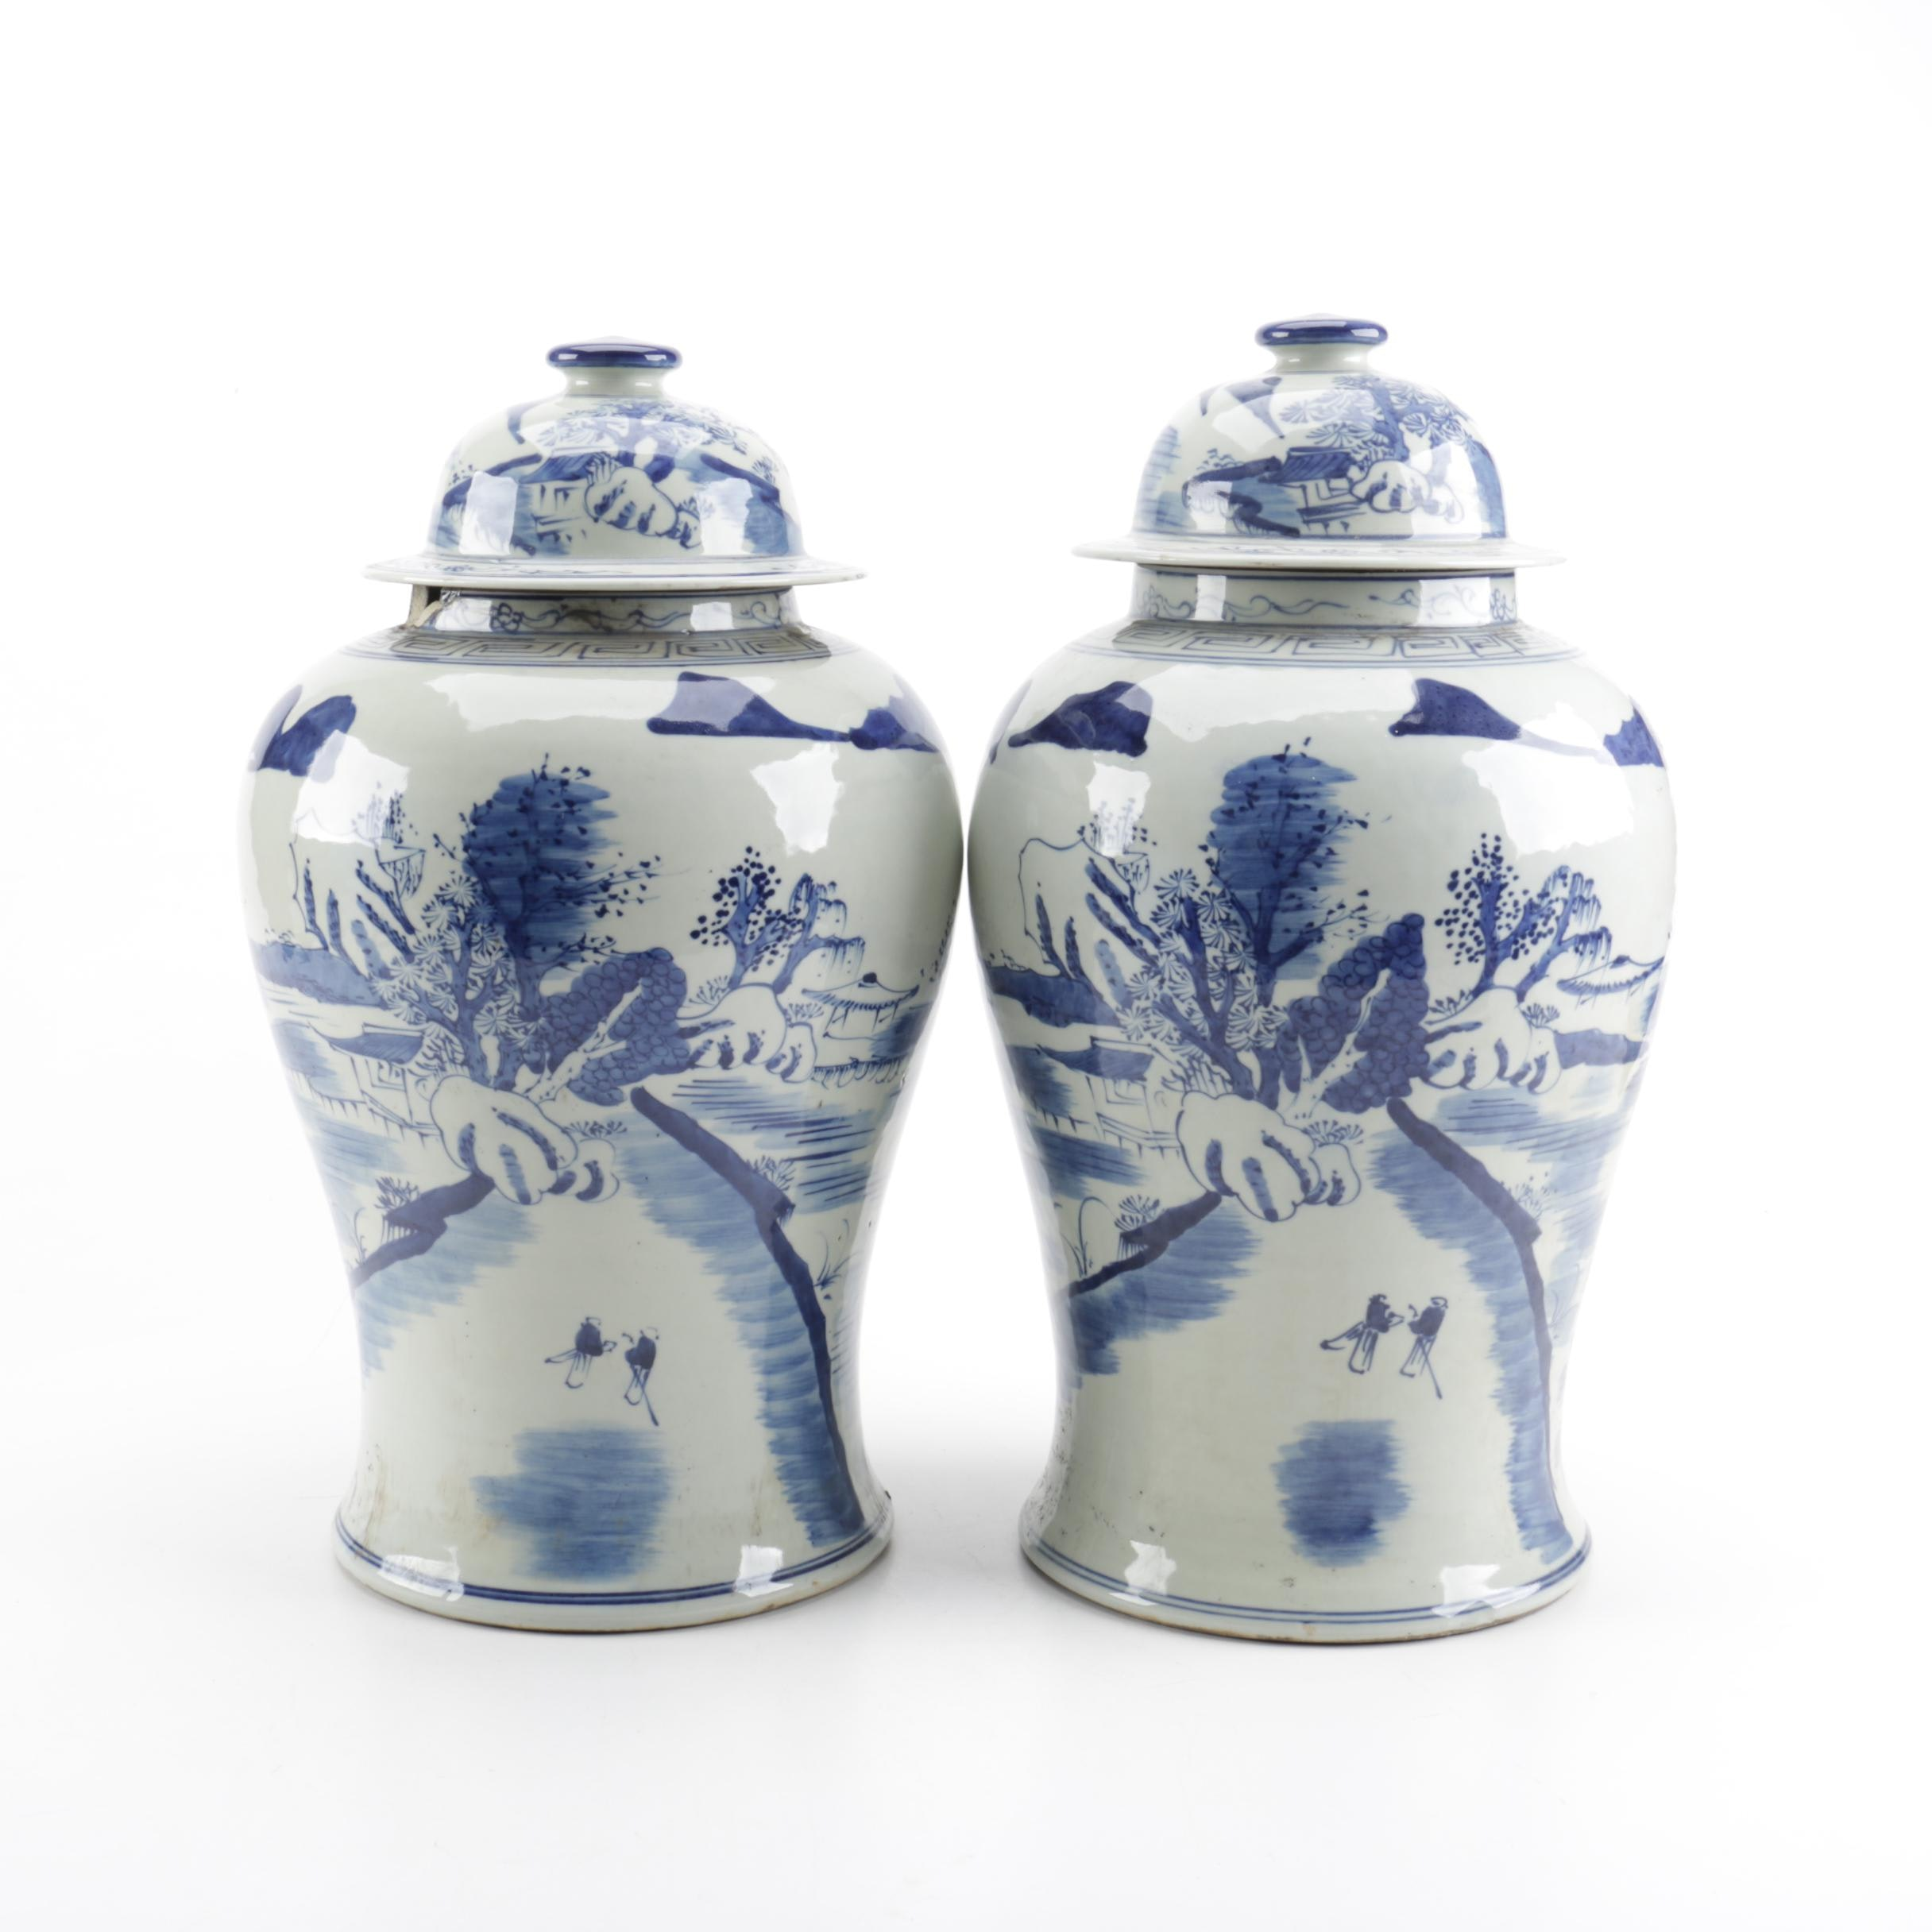 Pair of Chinese Blue and White Ceramic Temple Jars